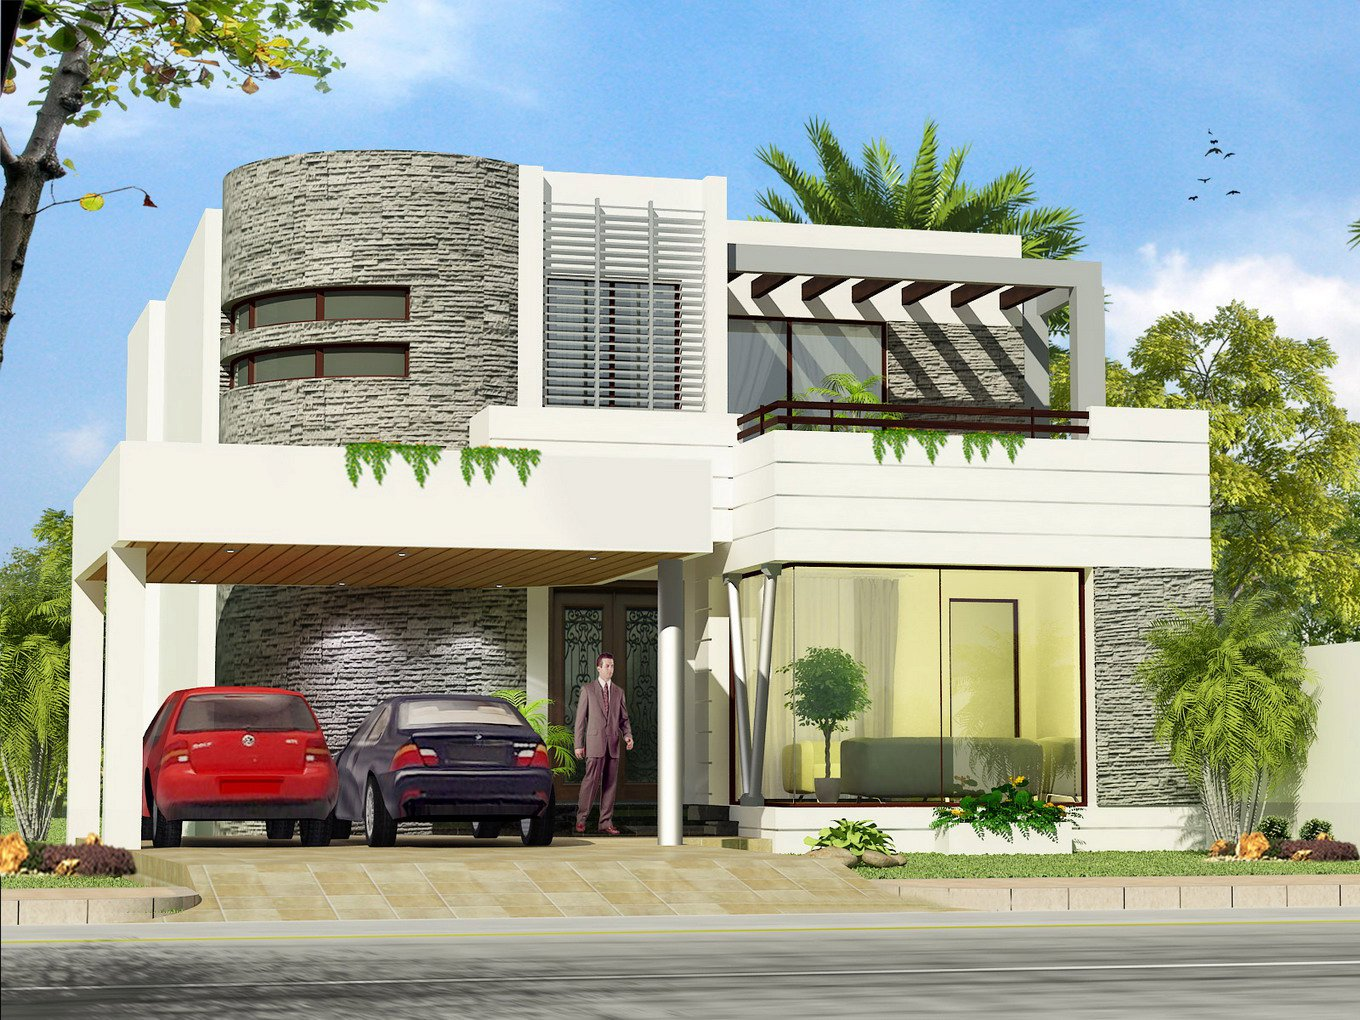 New home designs latest modern homes beautiful latest for Images of front view of beautiful modern houses